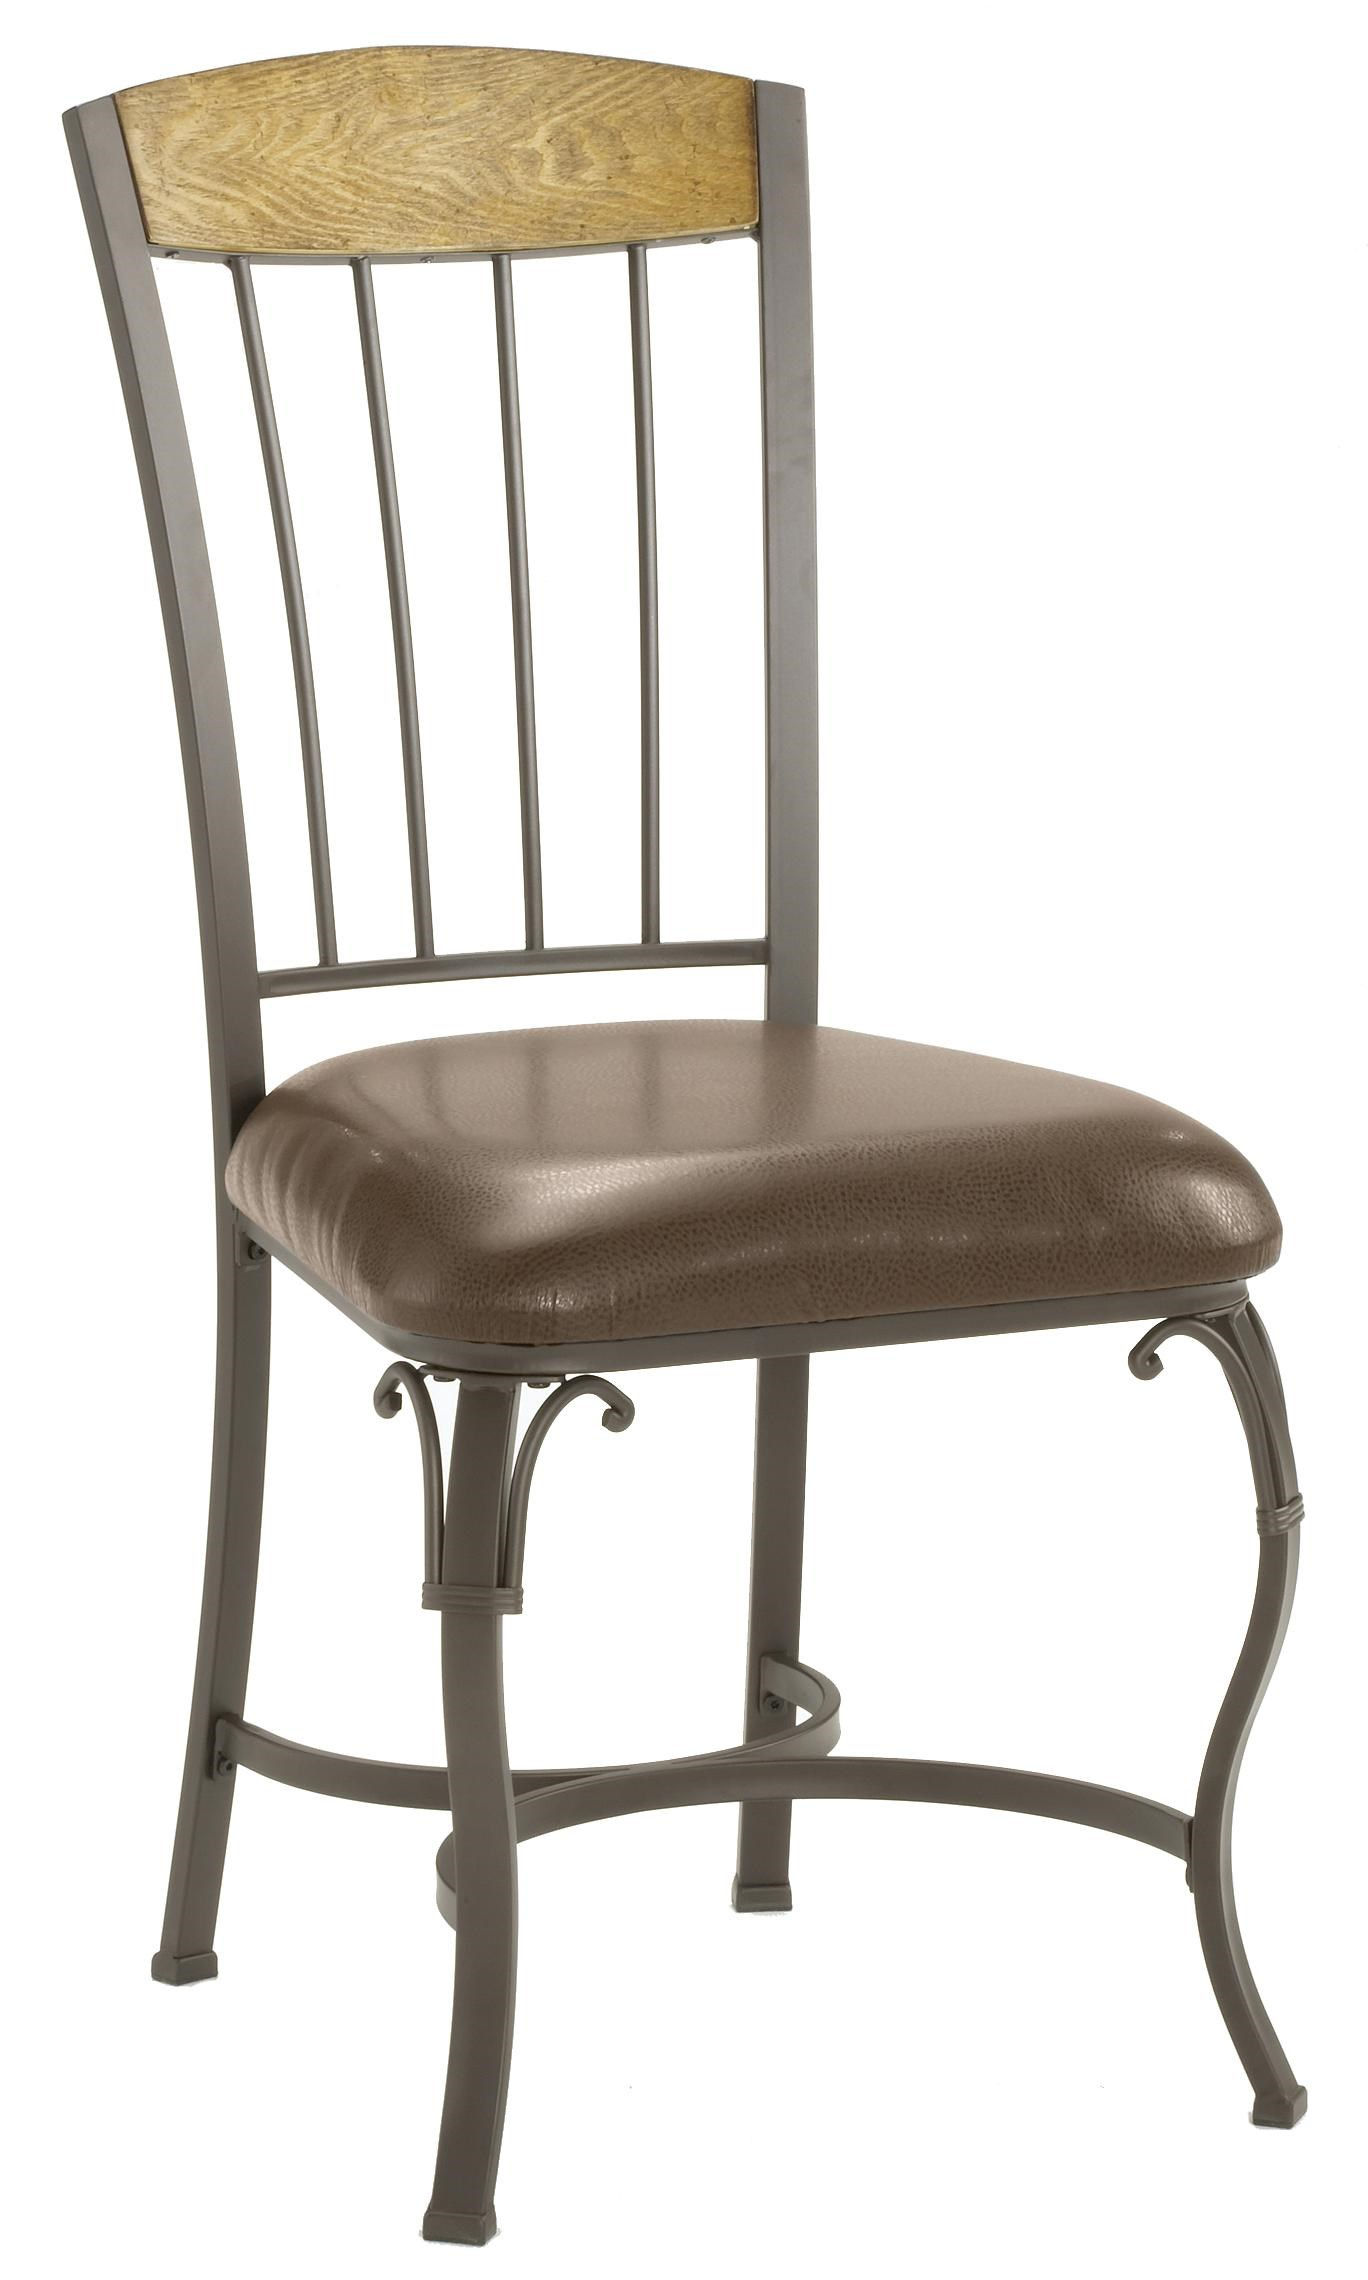 Hillsdale Lakeview Dining Chair with Wood Panel in Top - Godby Home Furnishings - Dining Side ...